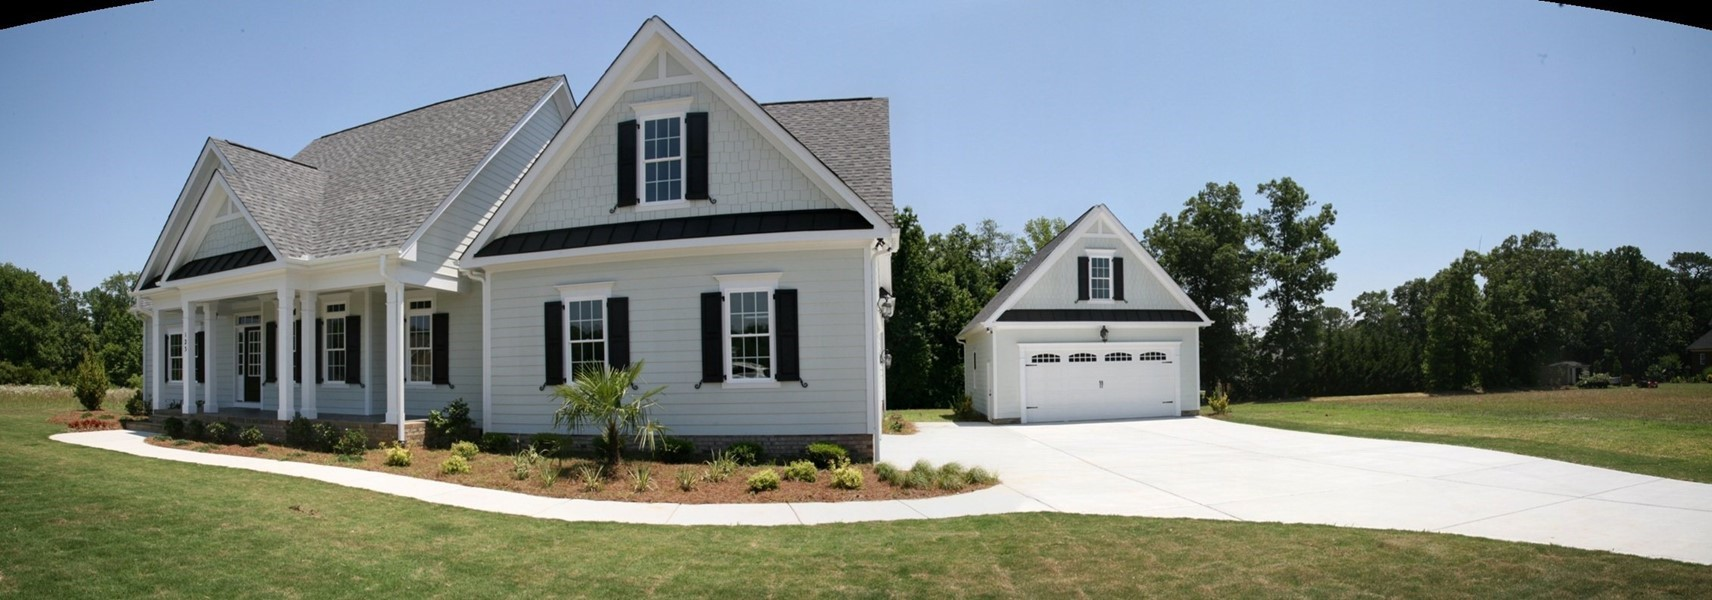 16 perfect images homes with detached garages kelsey for Homes with detached garage